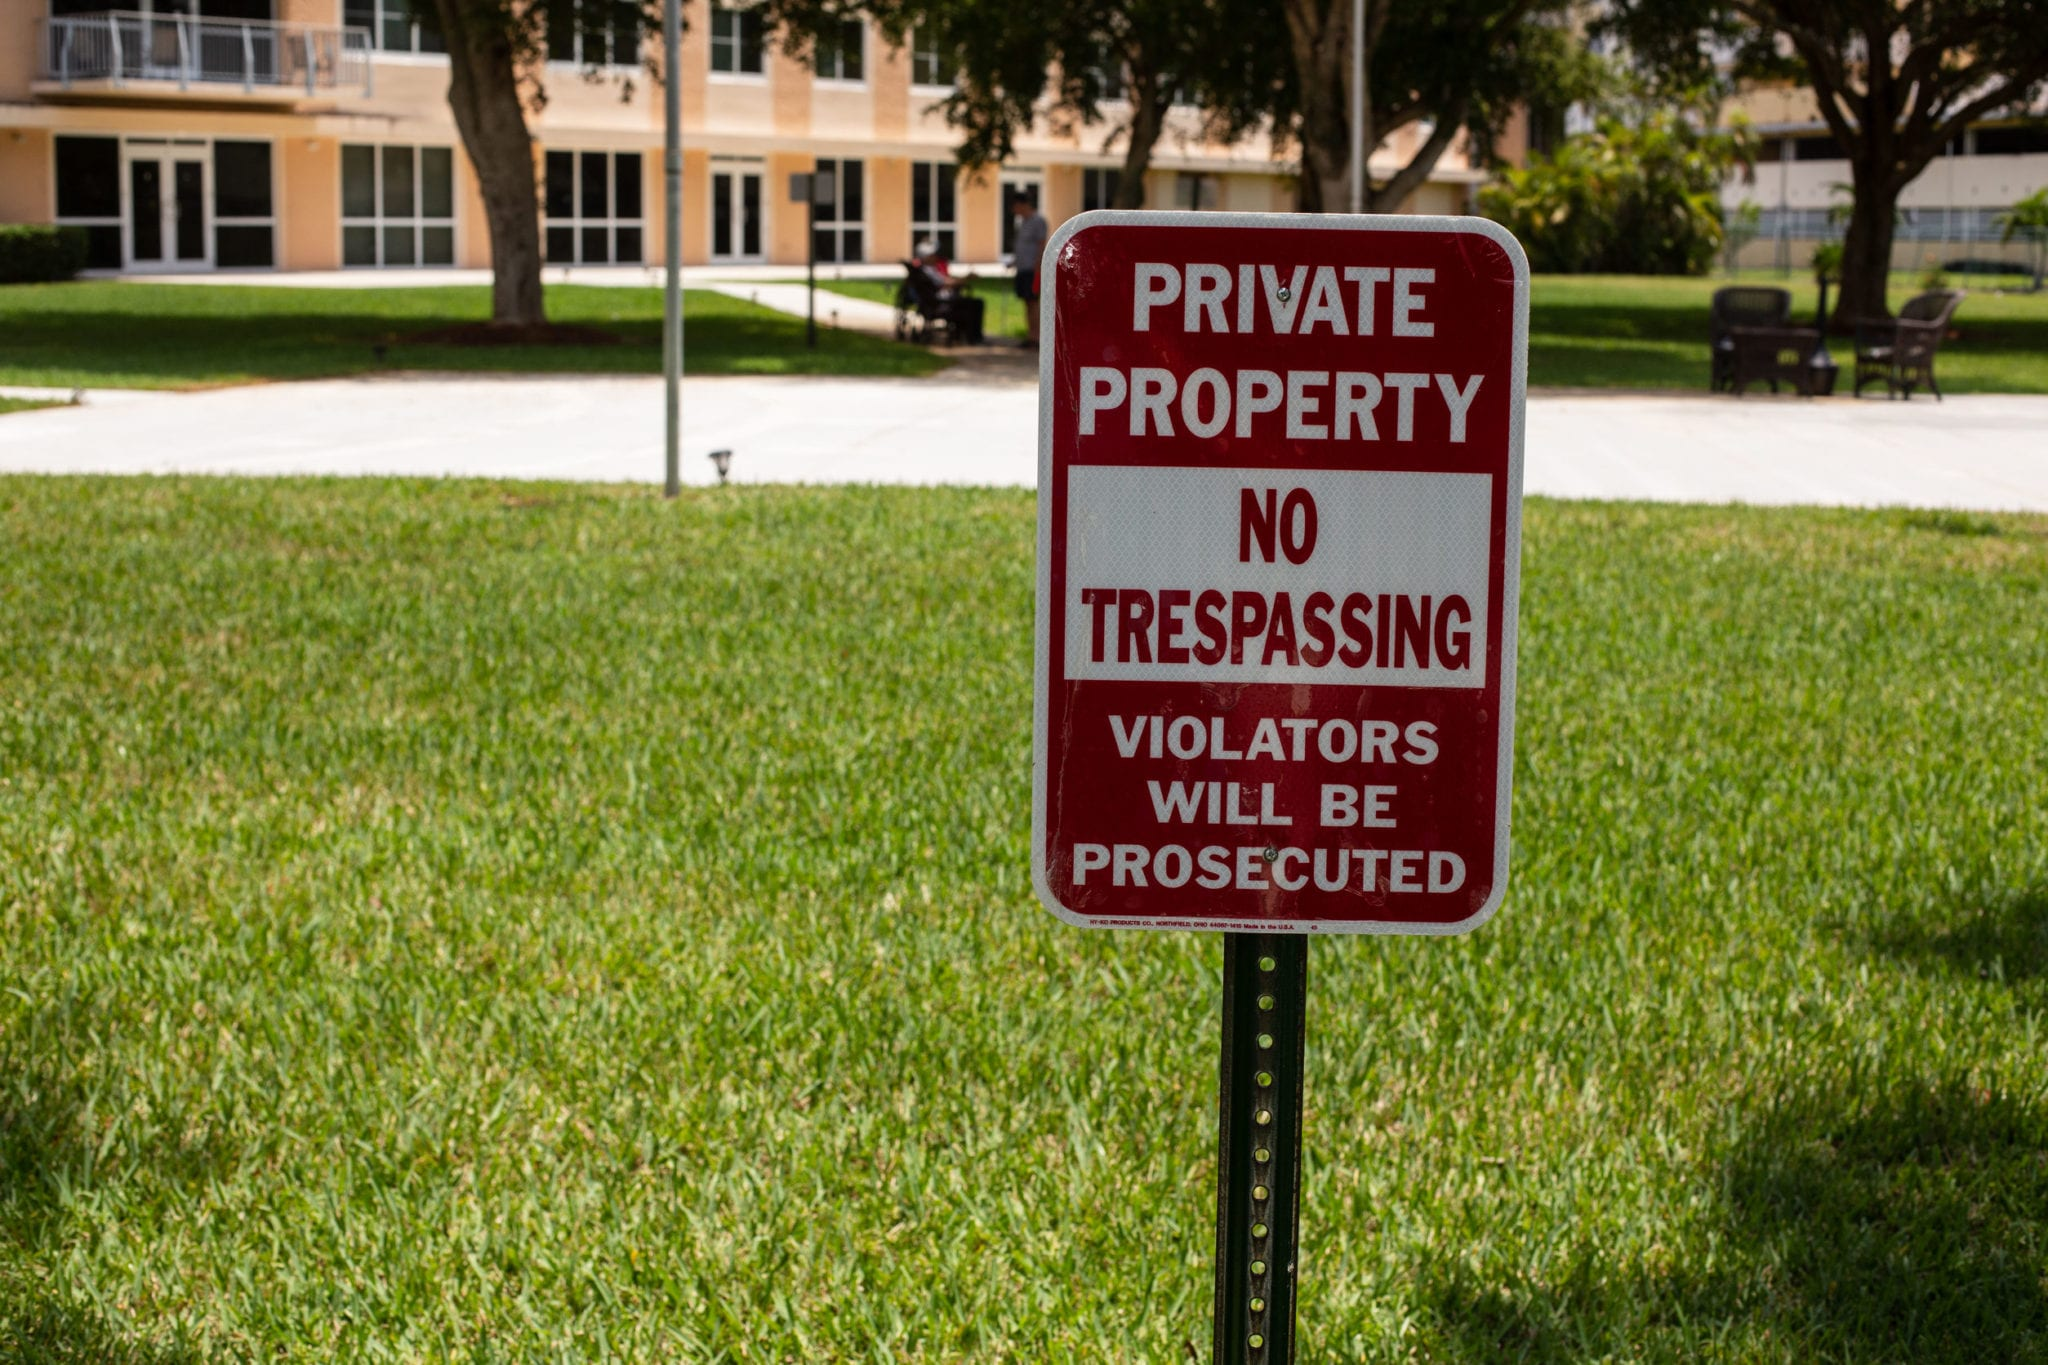 TX Protestors Not the Only Ones Facing Criminal Trespassing Charges